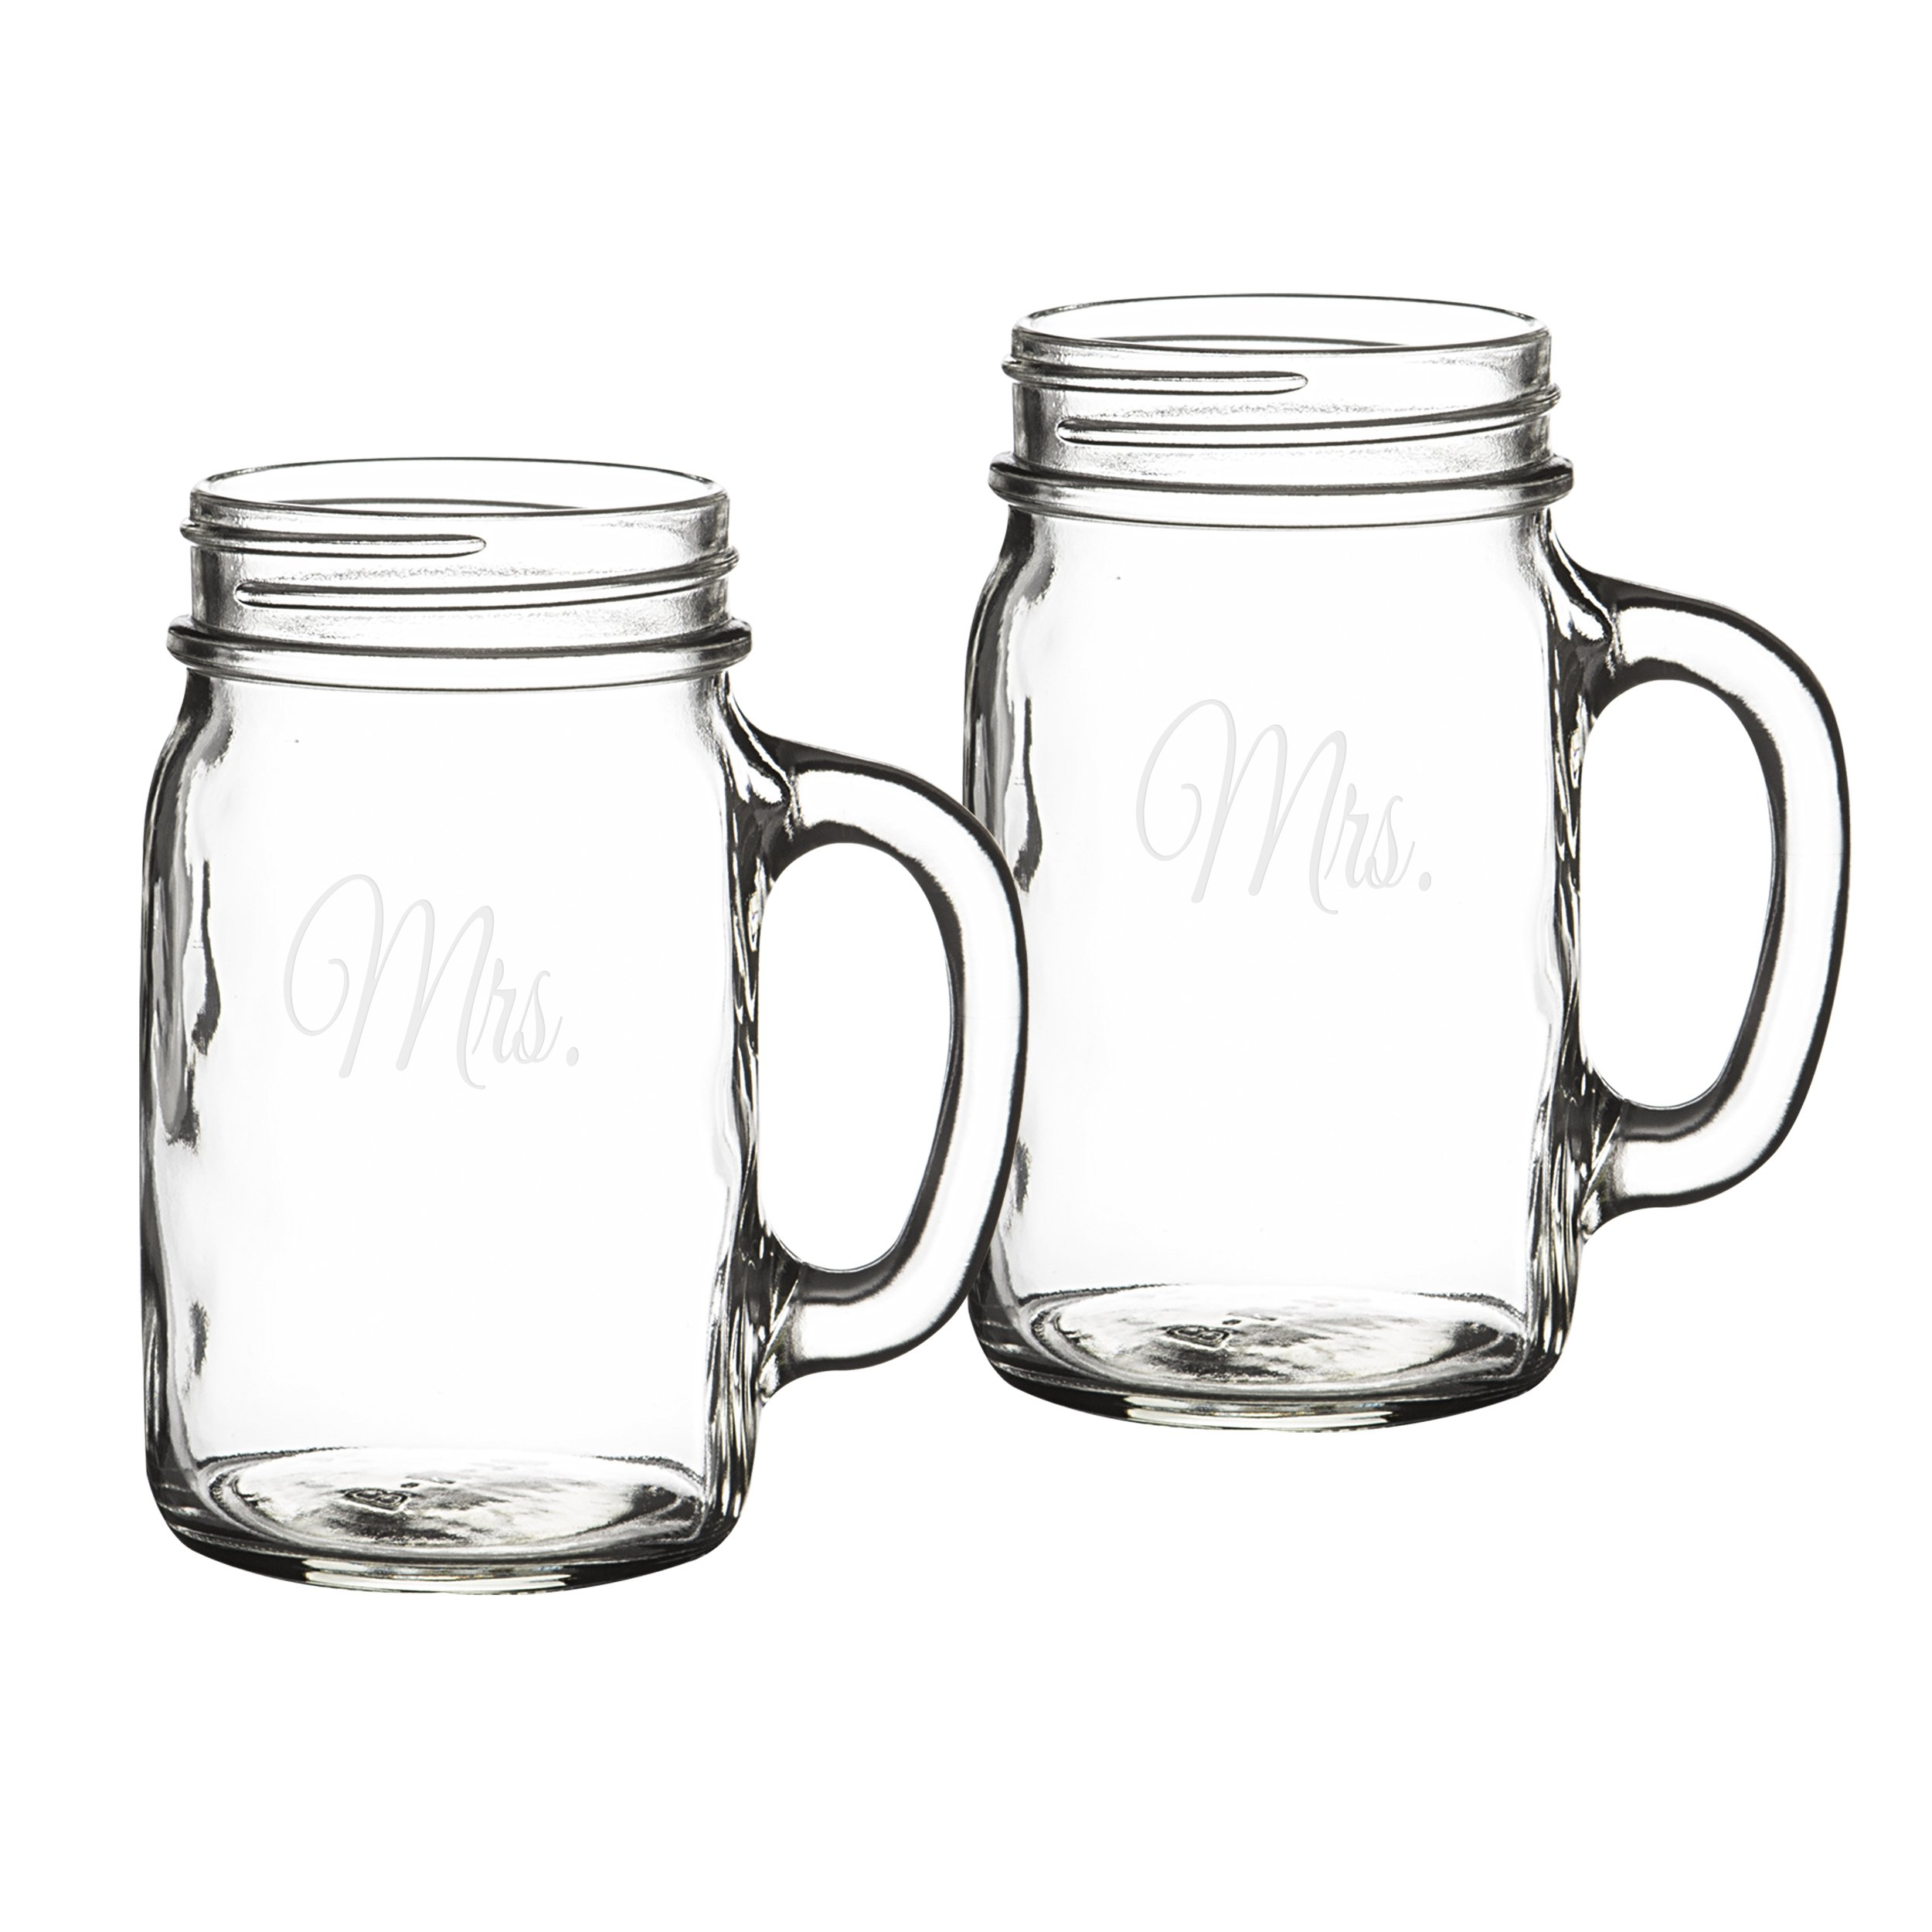 Cathy's Concepts Mrs. & Mrs. Old Fashioned Drinking Jar Set by Cathy's Concepts (Image #8)